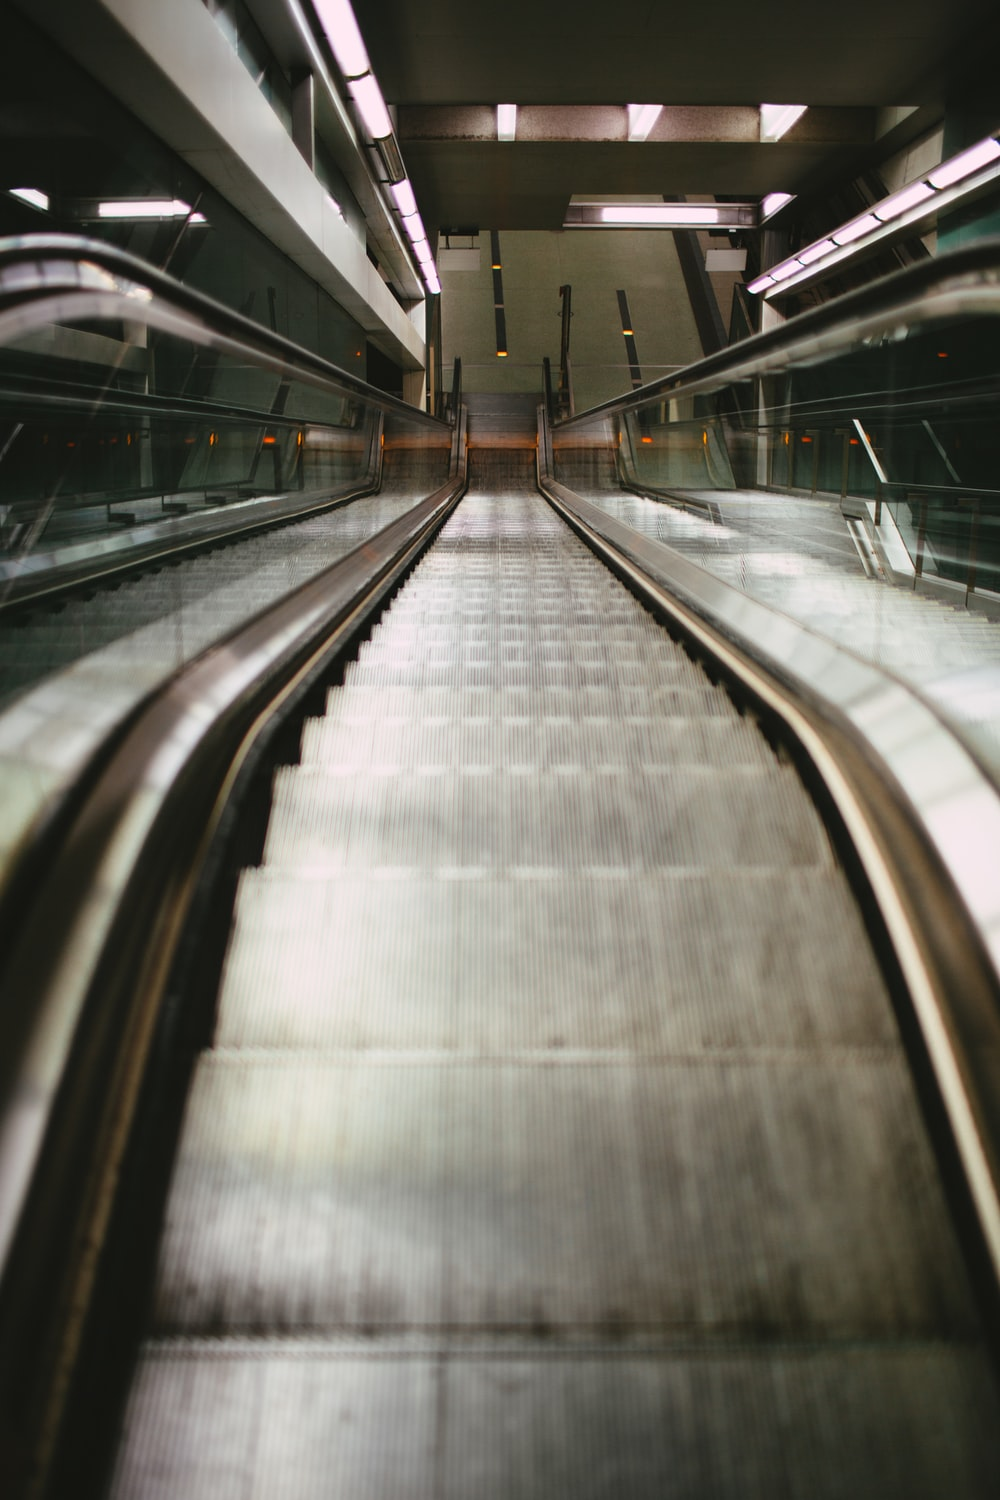 view photography of escalator